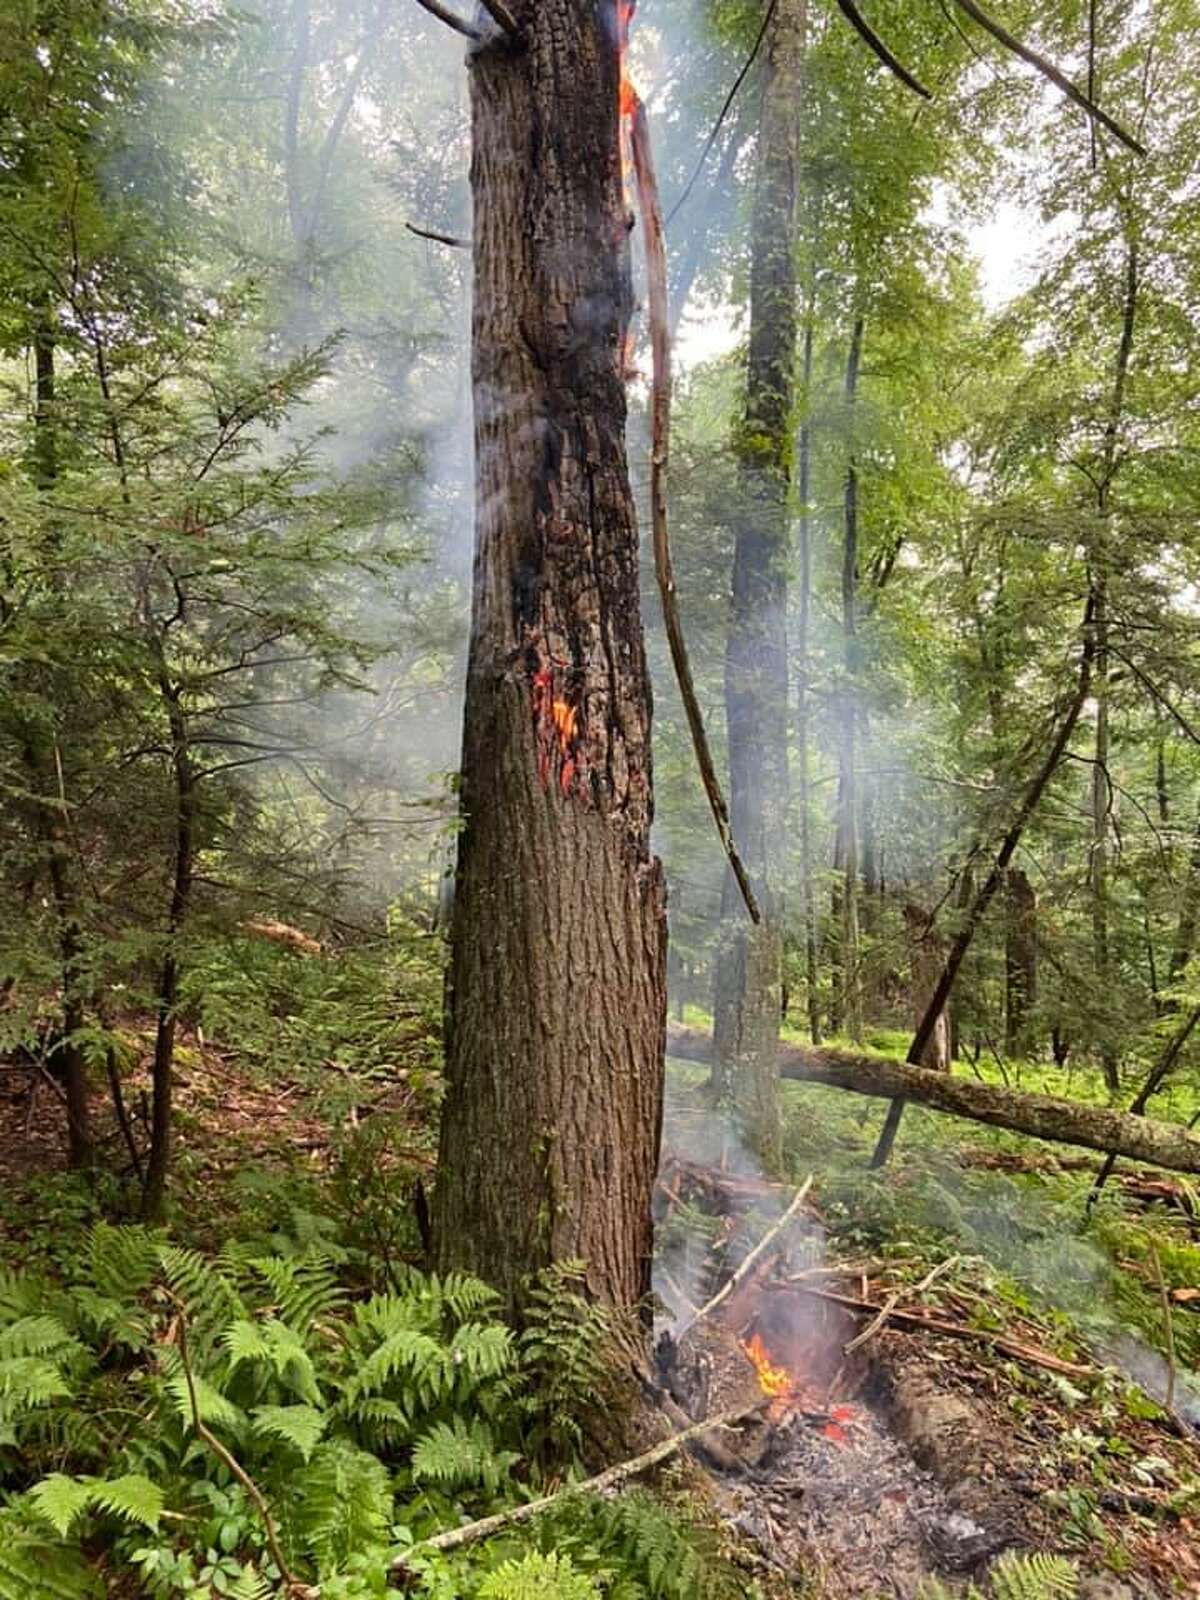 A tree on fire during a storm in Brookfield, Conn., on Monday, June 14, 2021.